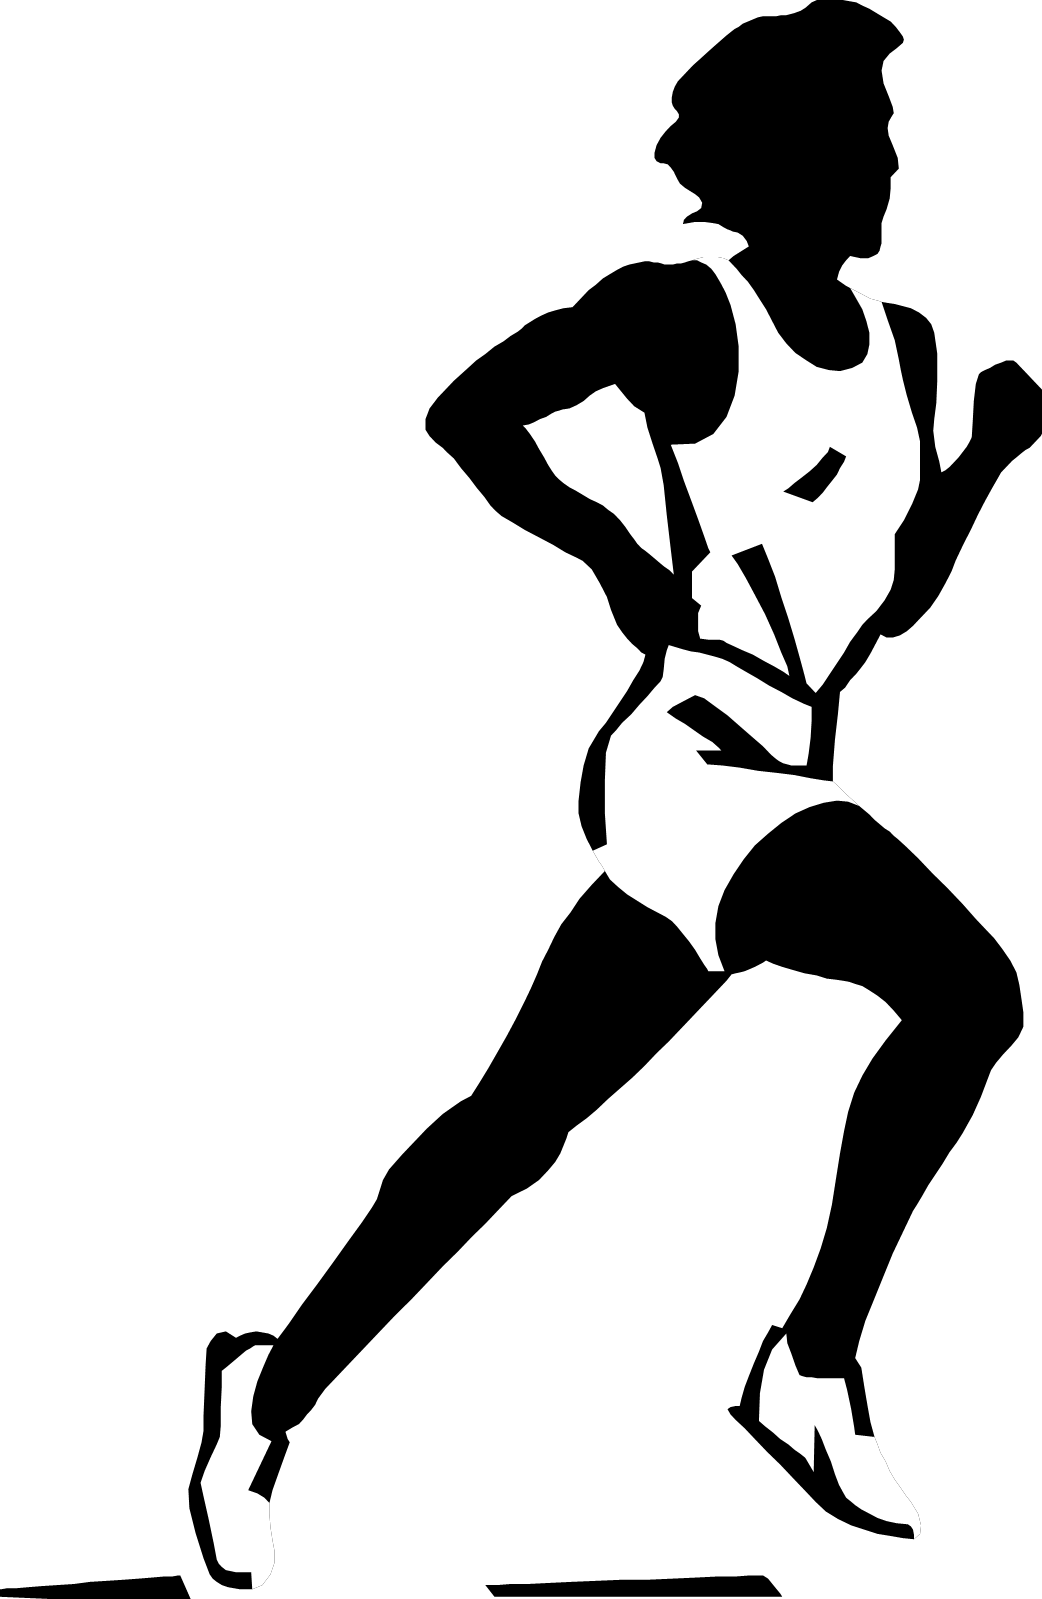 Track runner png. Run black and white